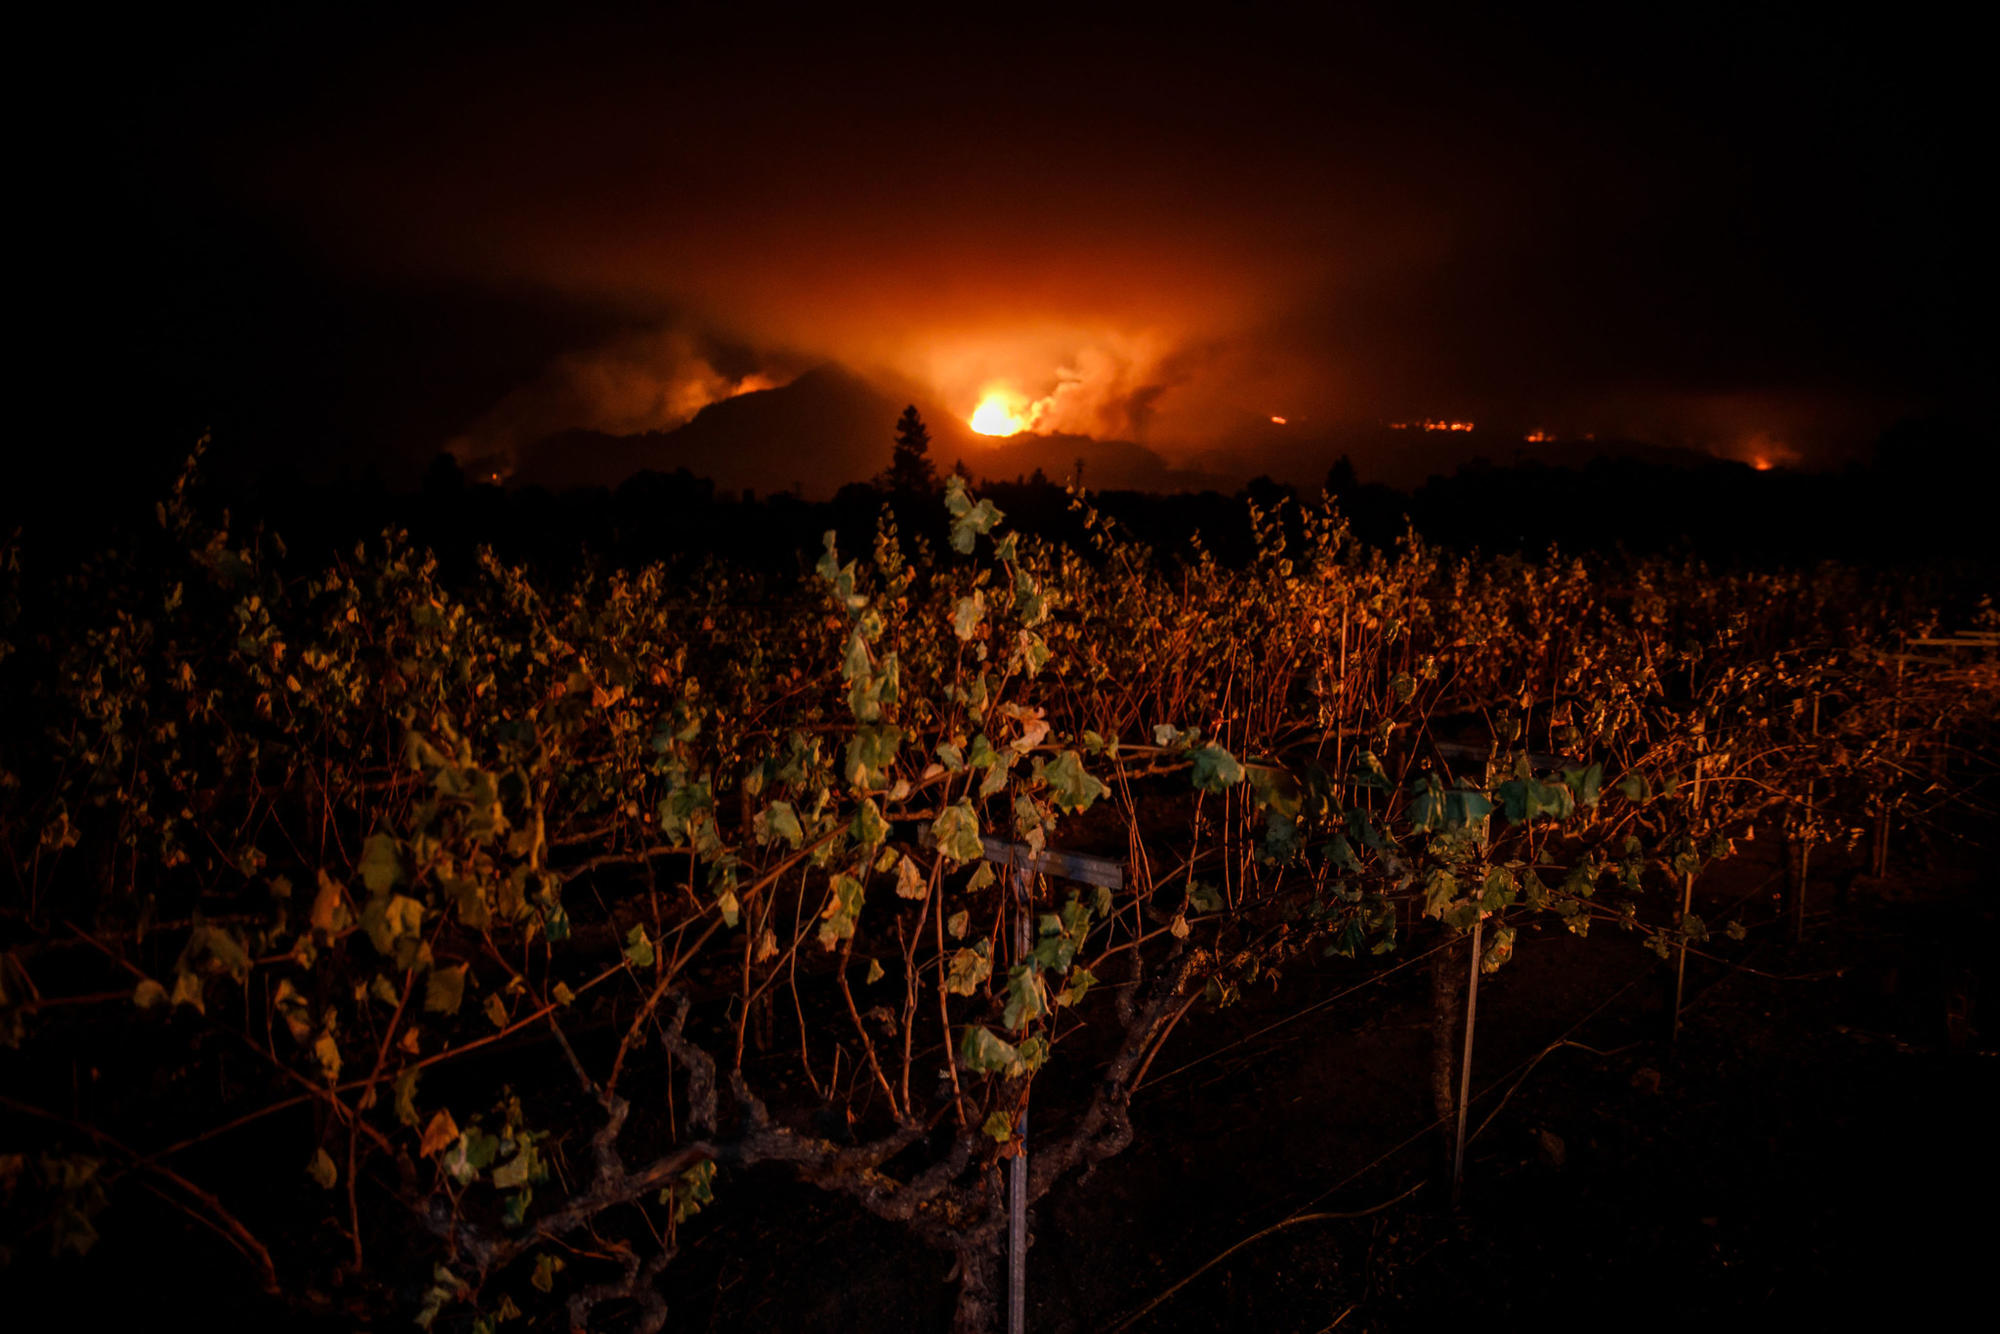 Fire lights up the night sky framed by a vineyard near Kenwood.